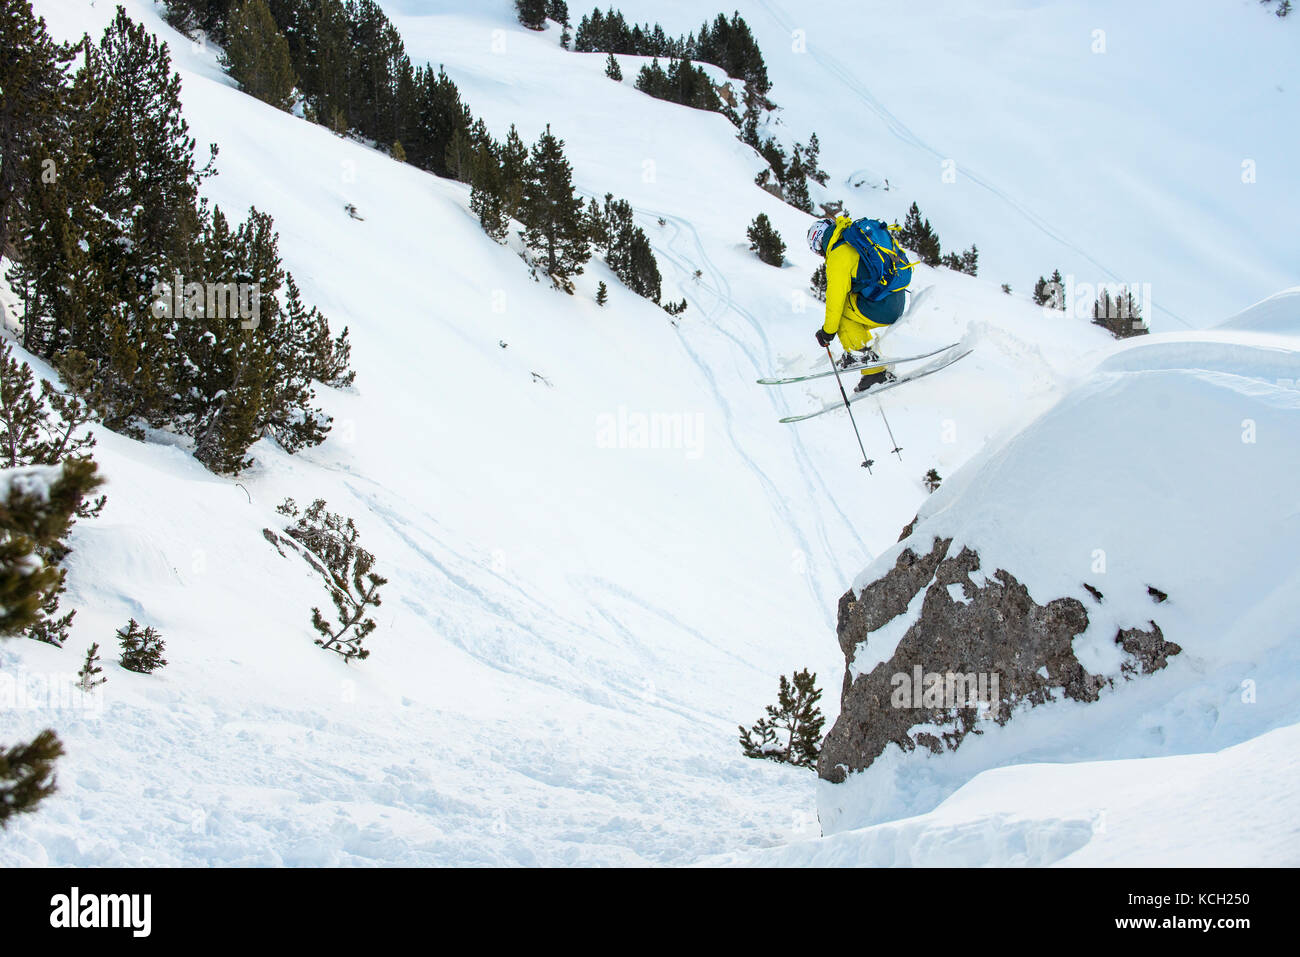 A skier jumps off a rock off piste in the French alpine resort of Courchevel. - Stock Image